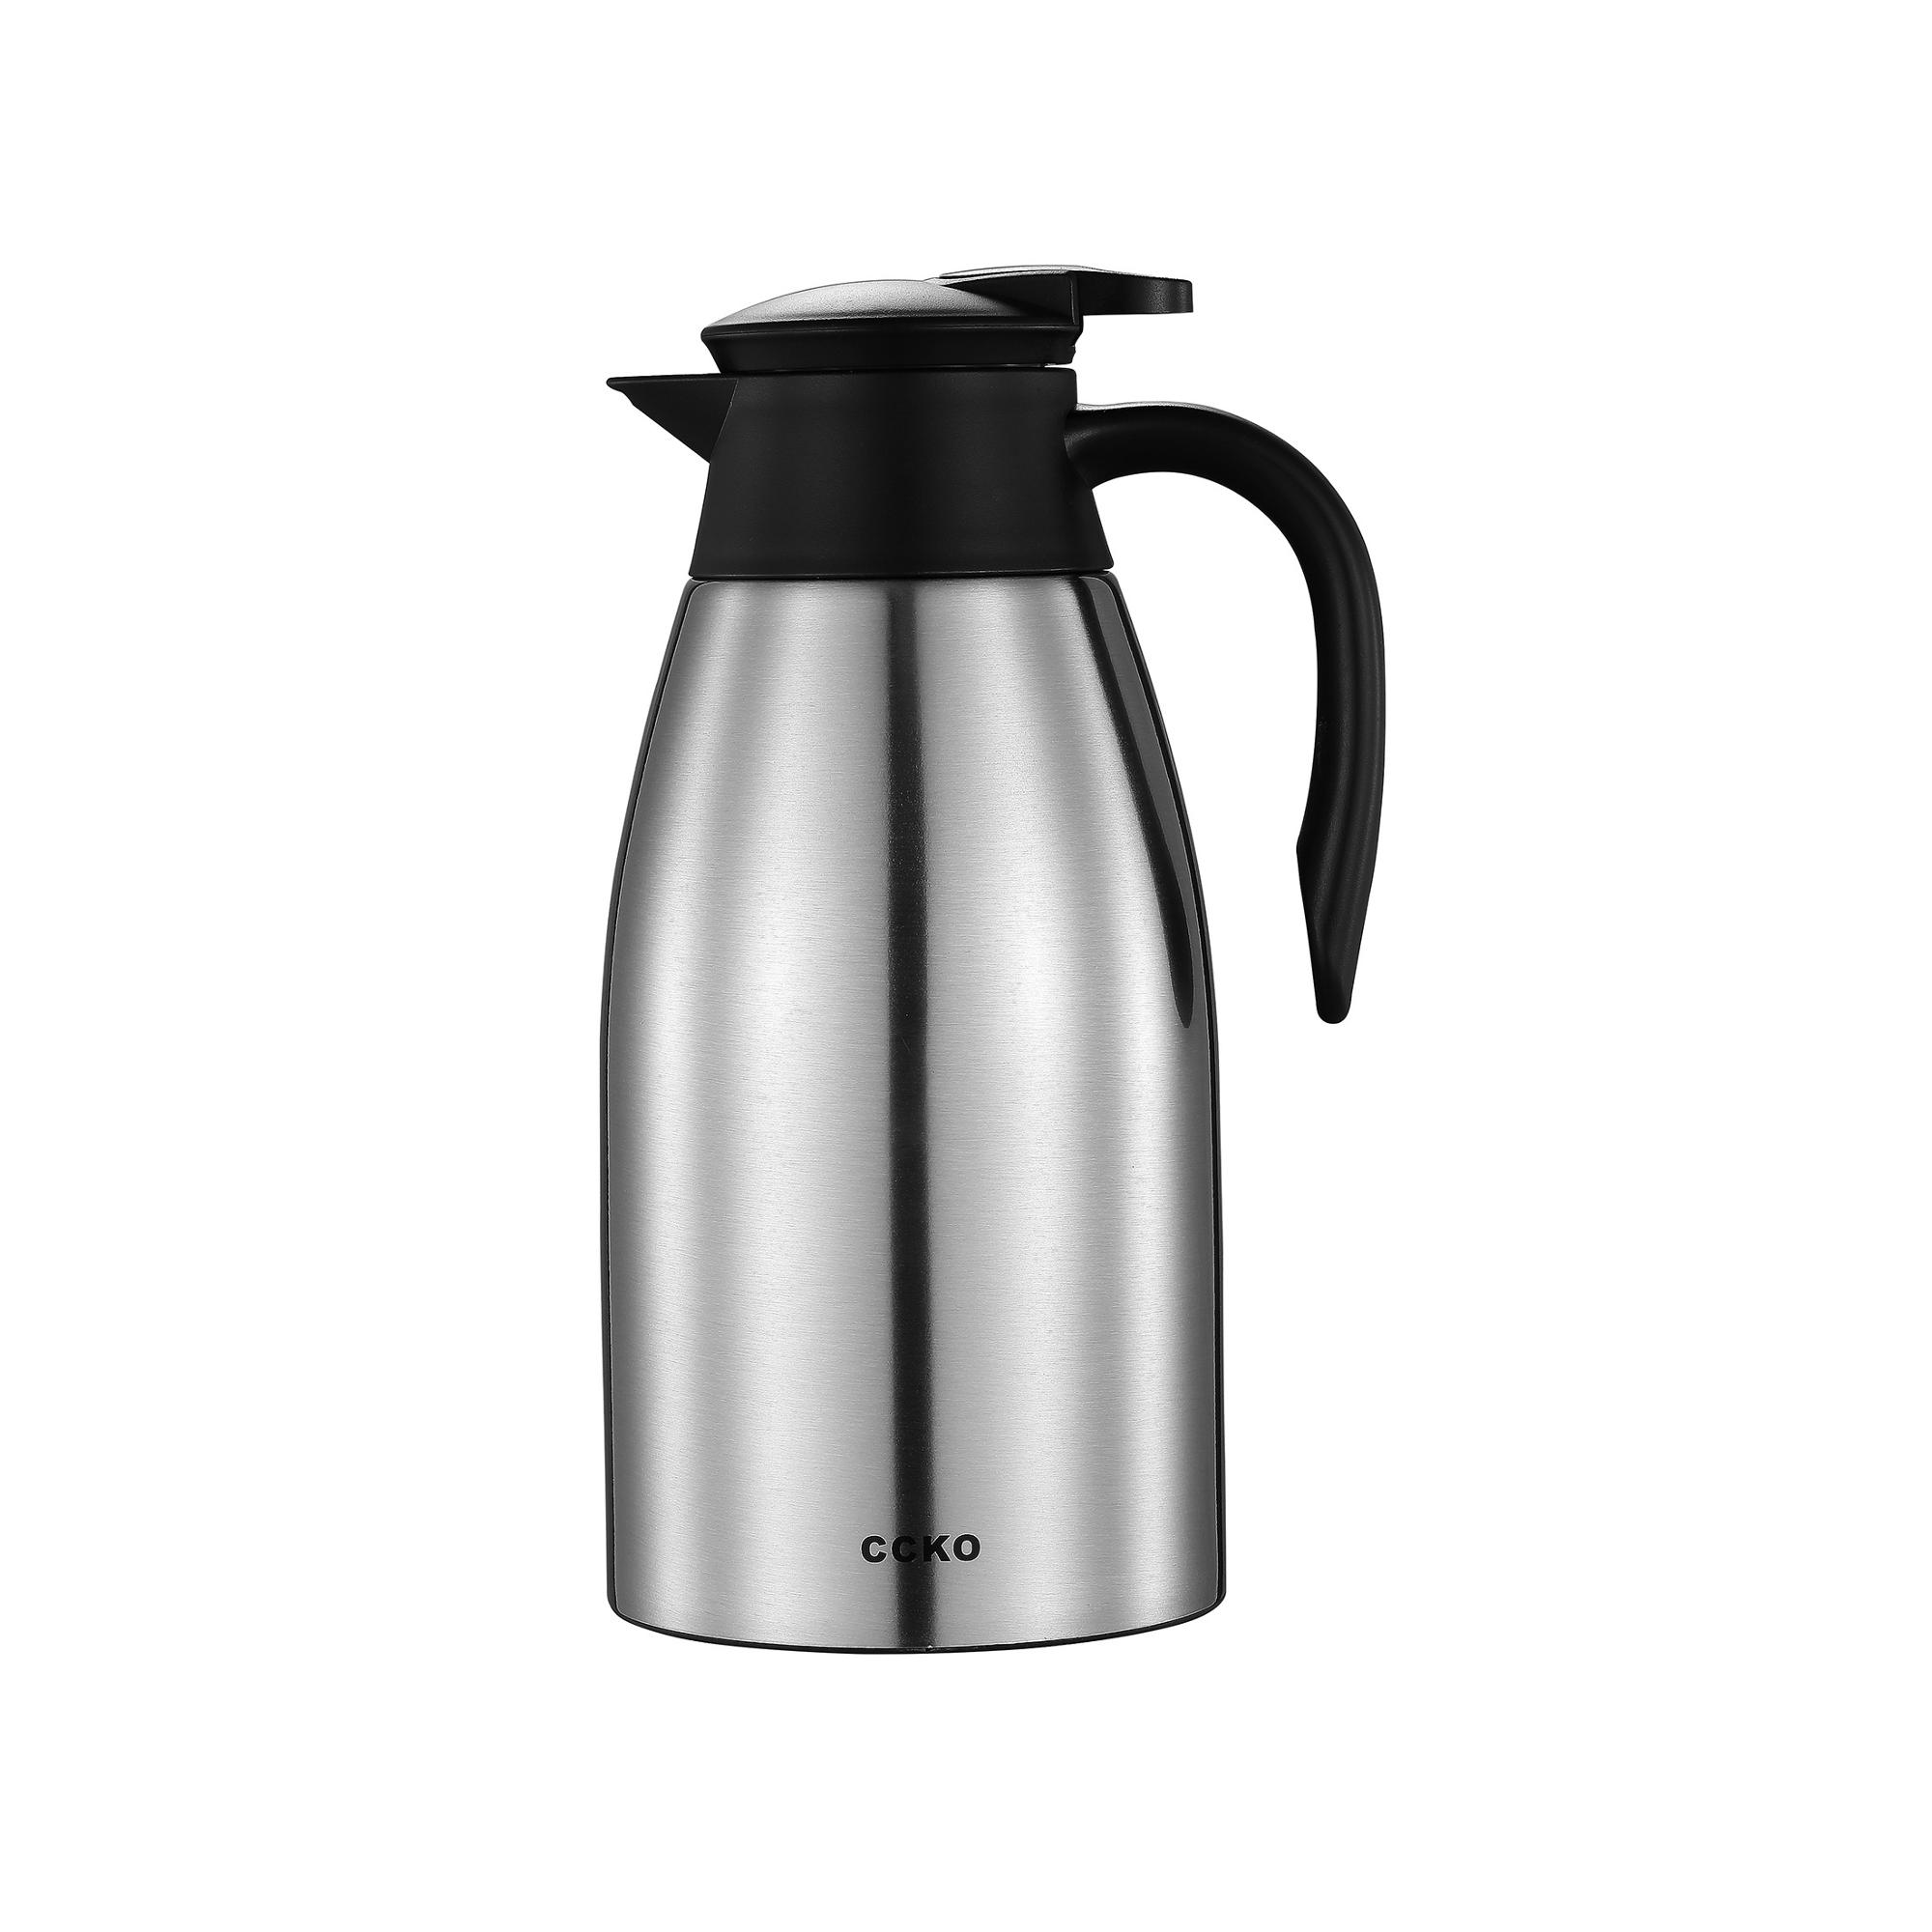 Good quality stainless steel thermos vacuum flask jug